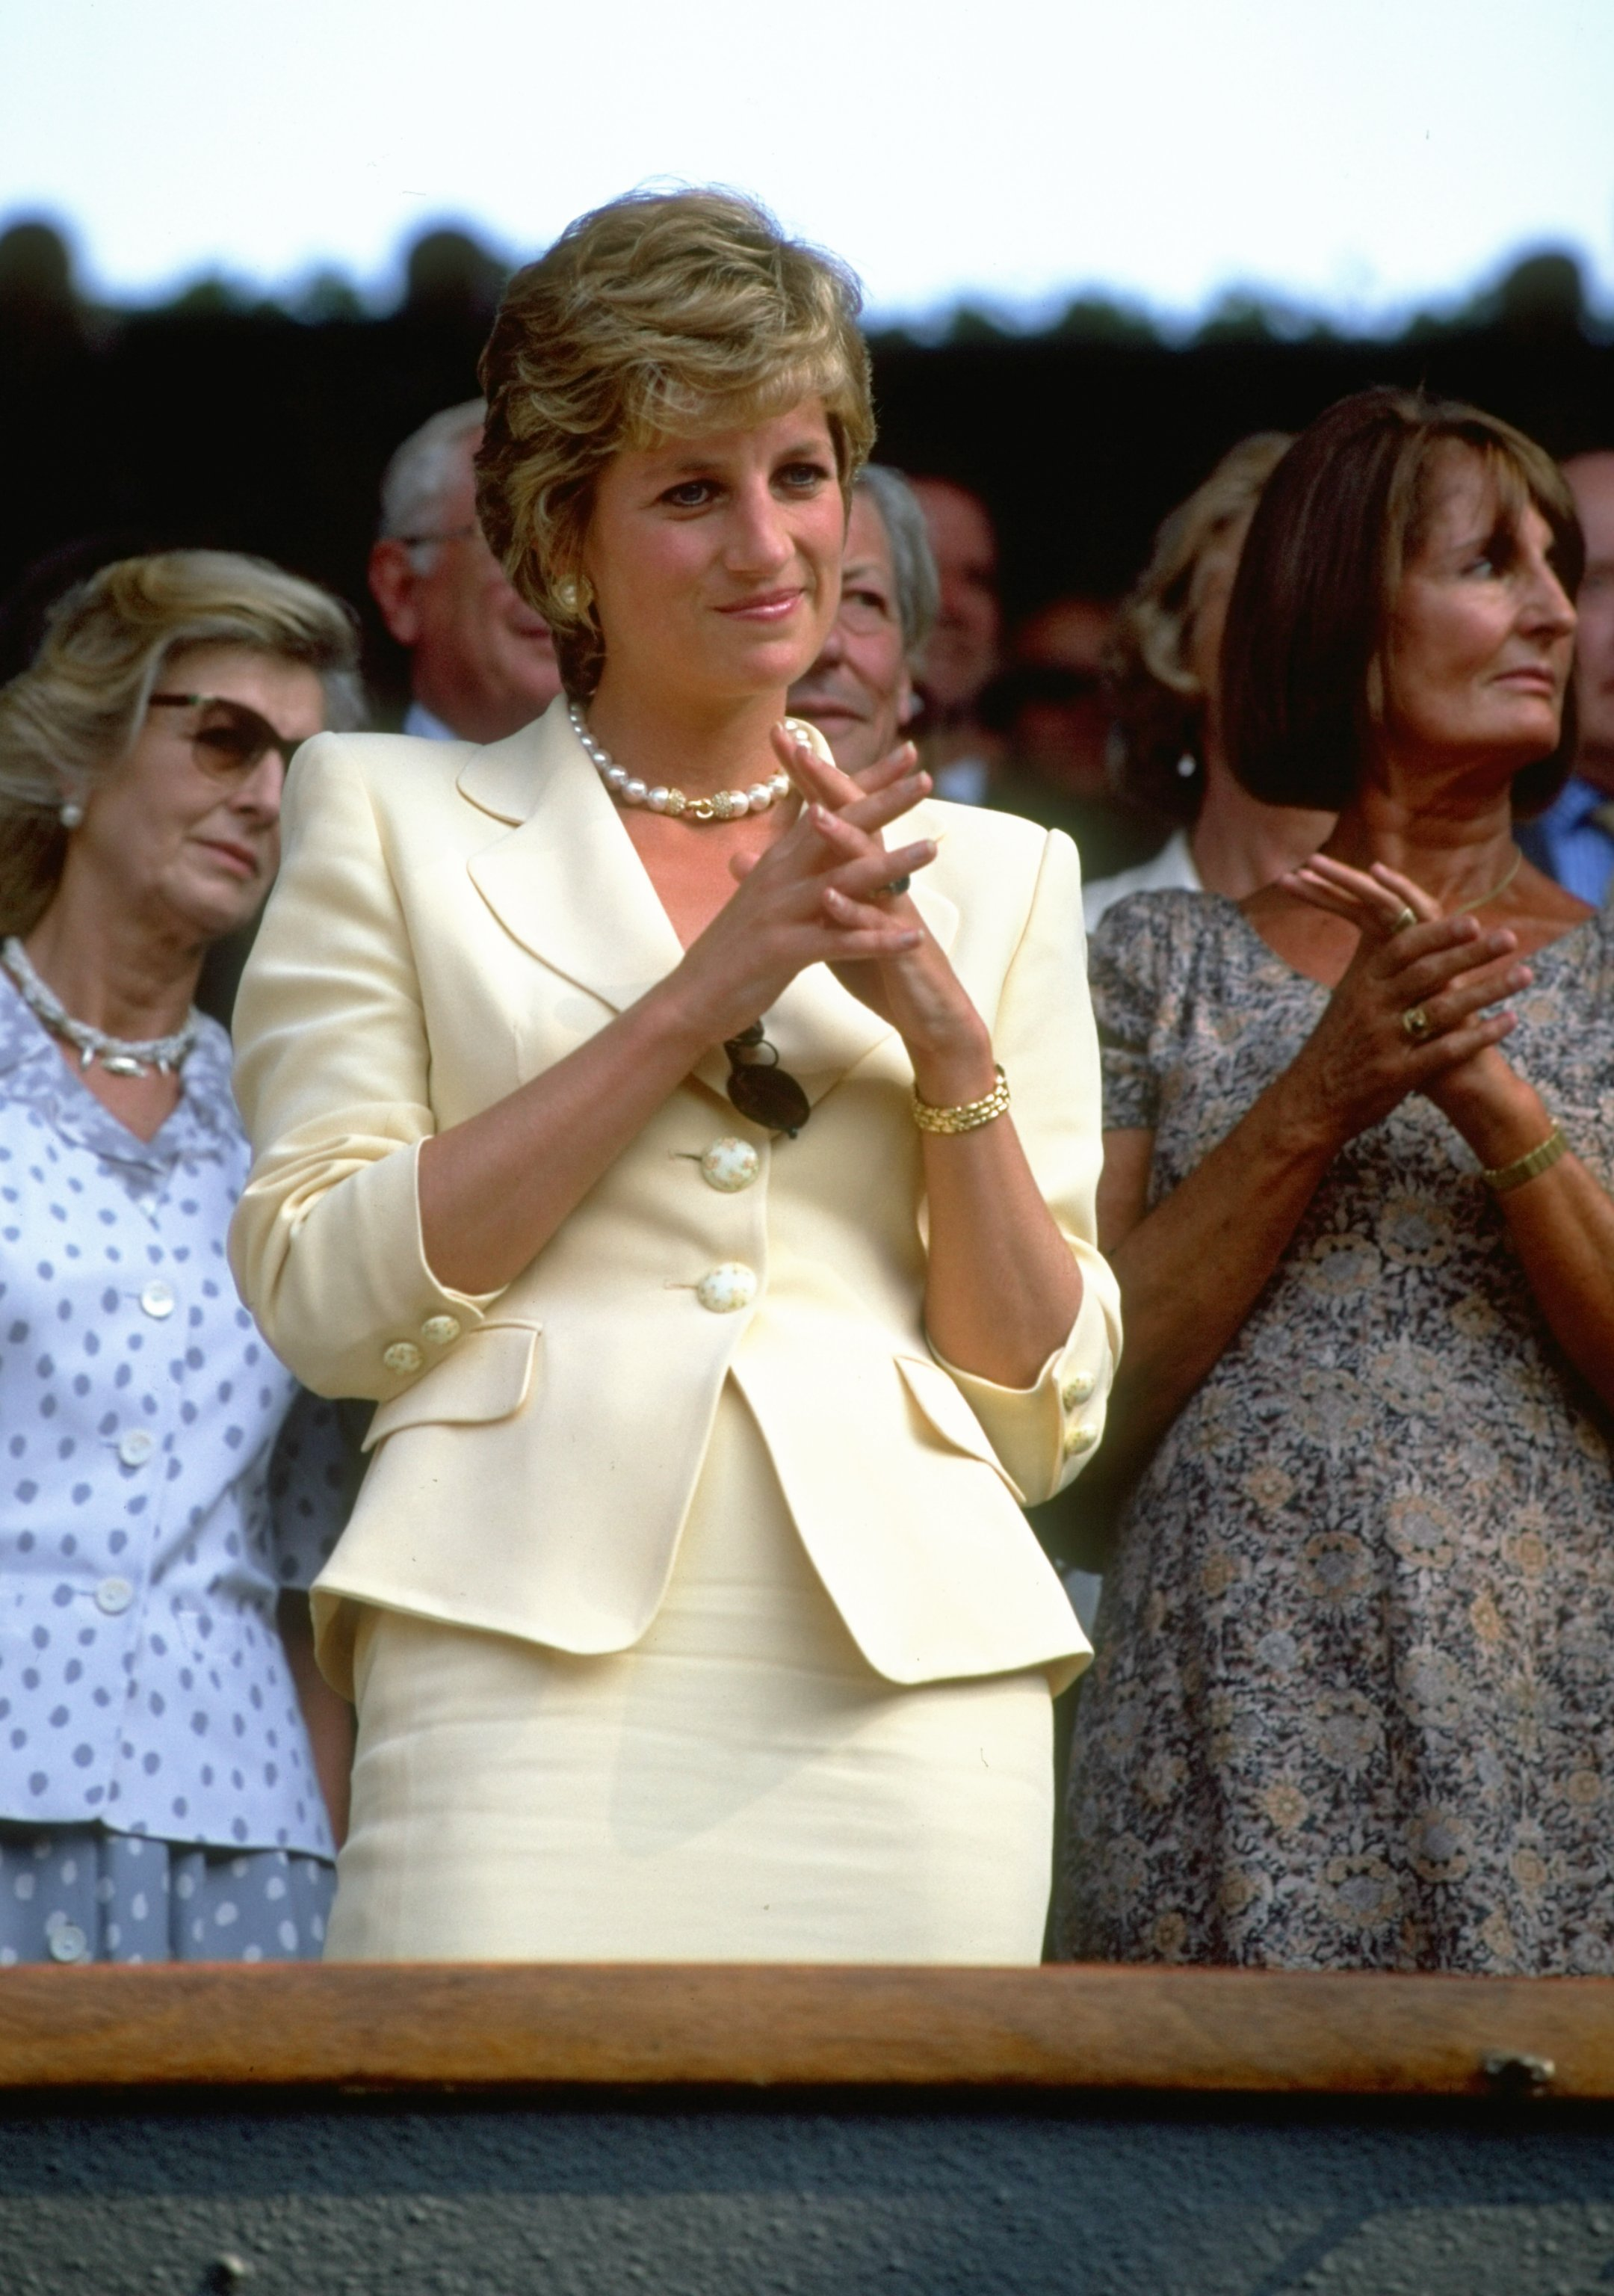 Portrait of Diana, Princess of Wales during the Lawn Tennis Championships on July 9, 1995 at Wimbledon in London | Photo: Getty Images